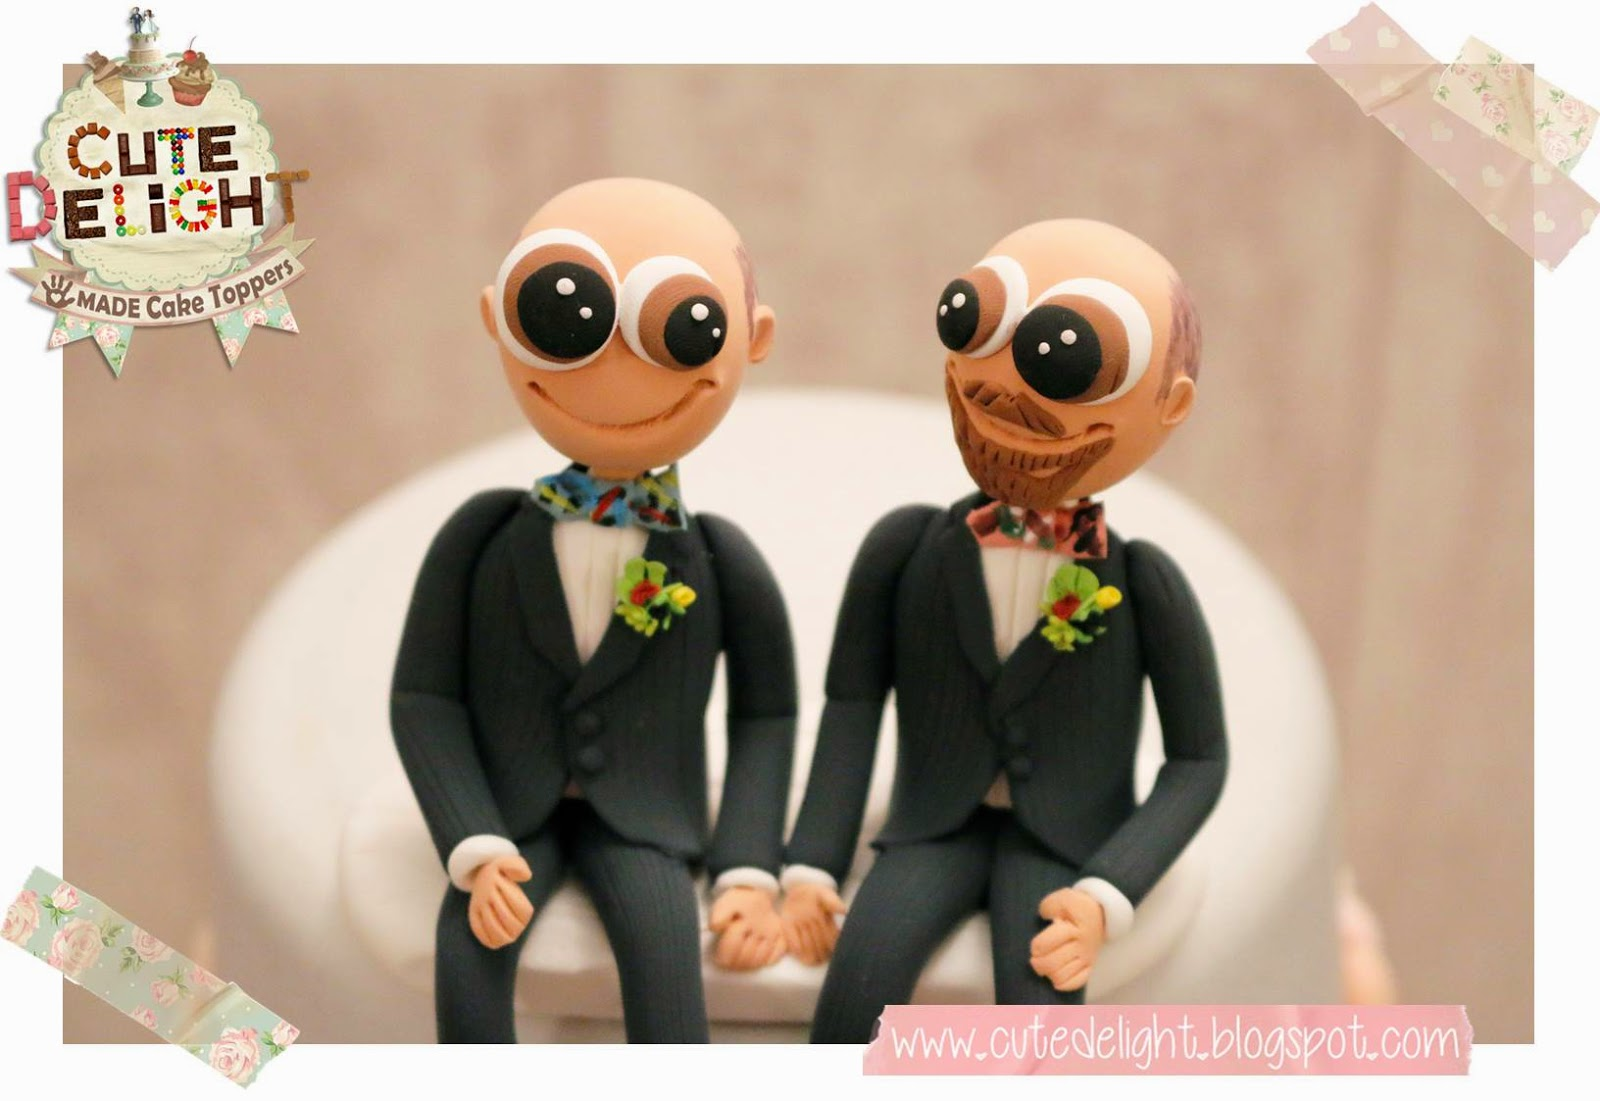 Gay Wedding Cake Topper   2 Grooms Sitting Down On Their Cake Topper    CARTOONISH STYLE